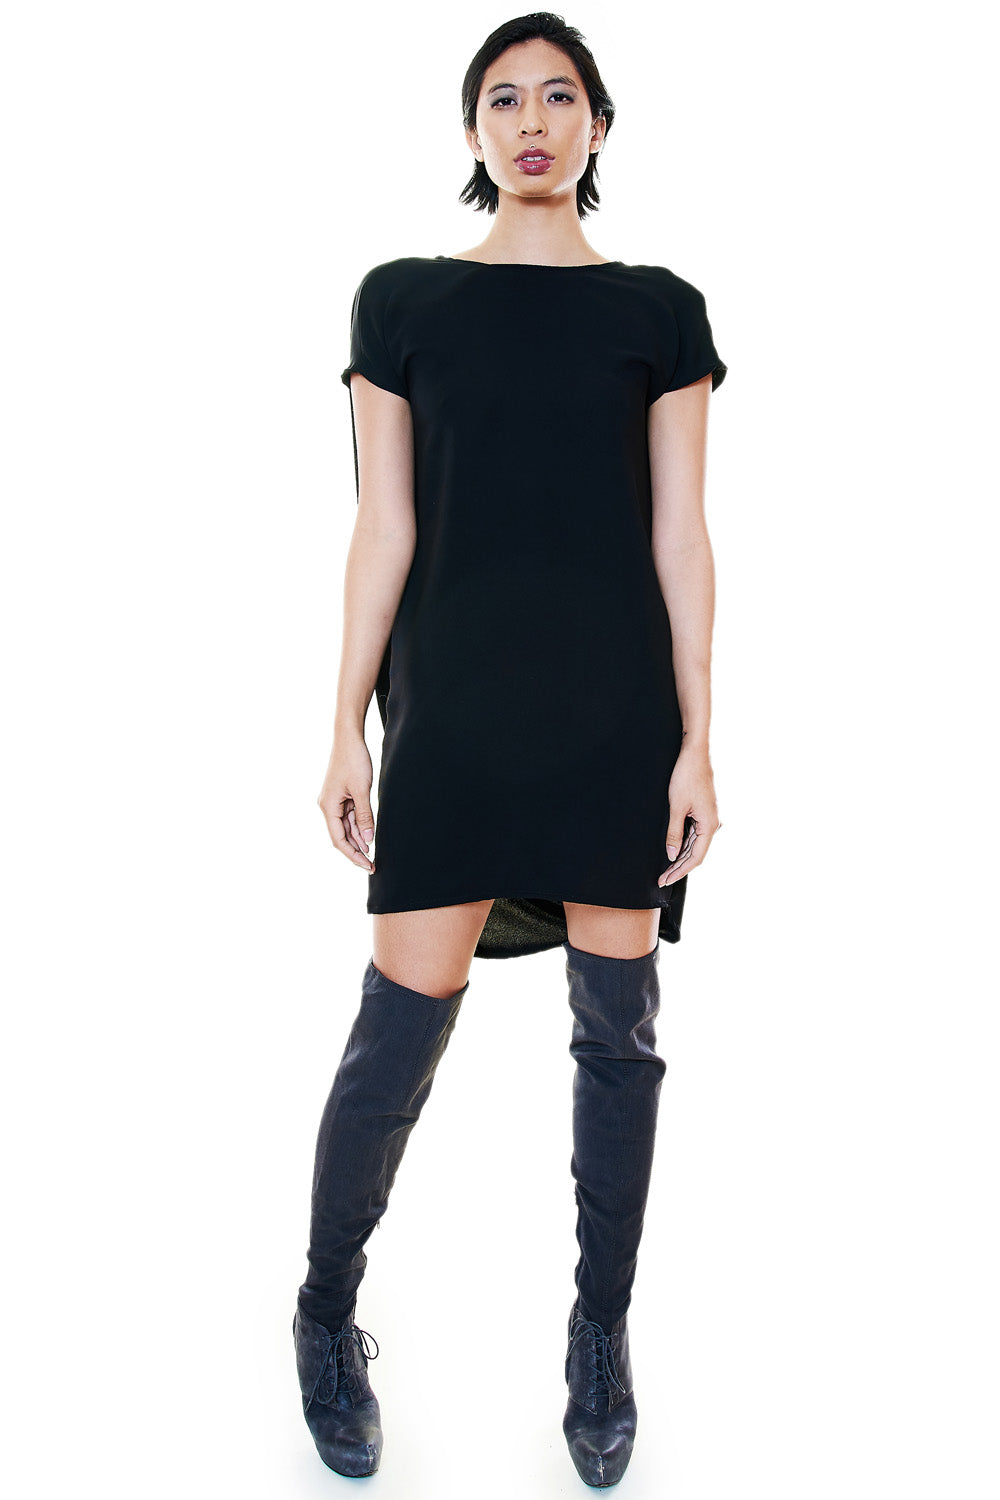 Black Tunic Dress - casacomostyle